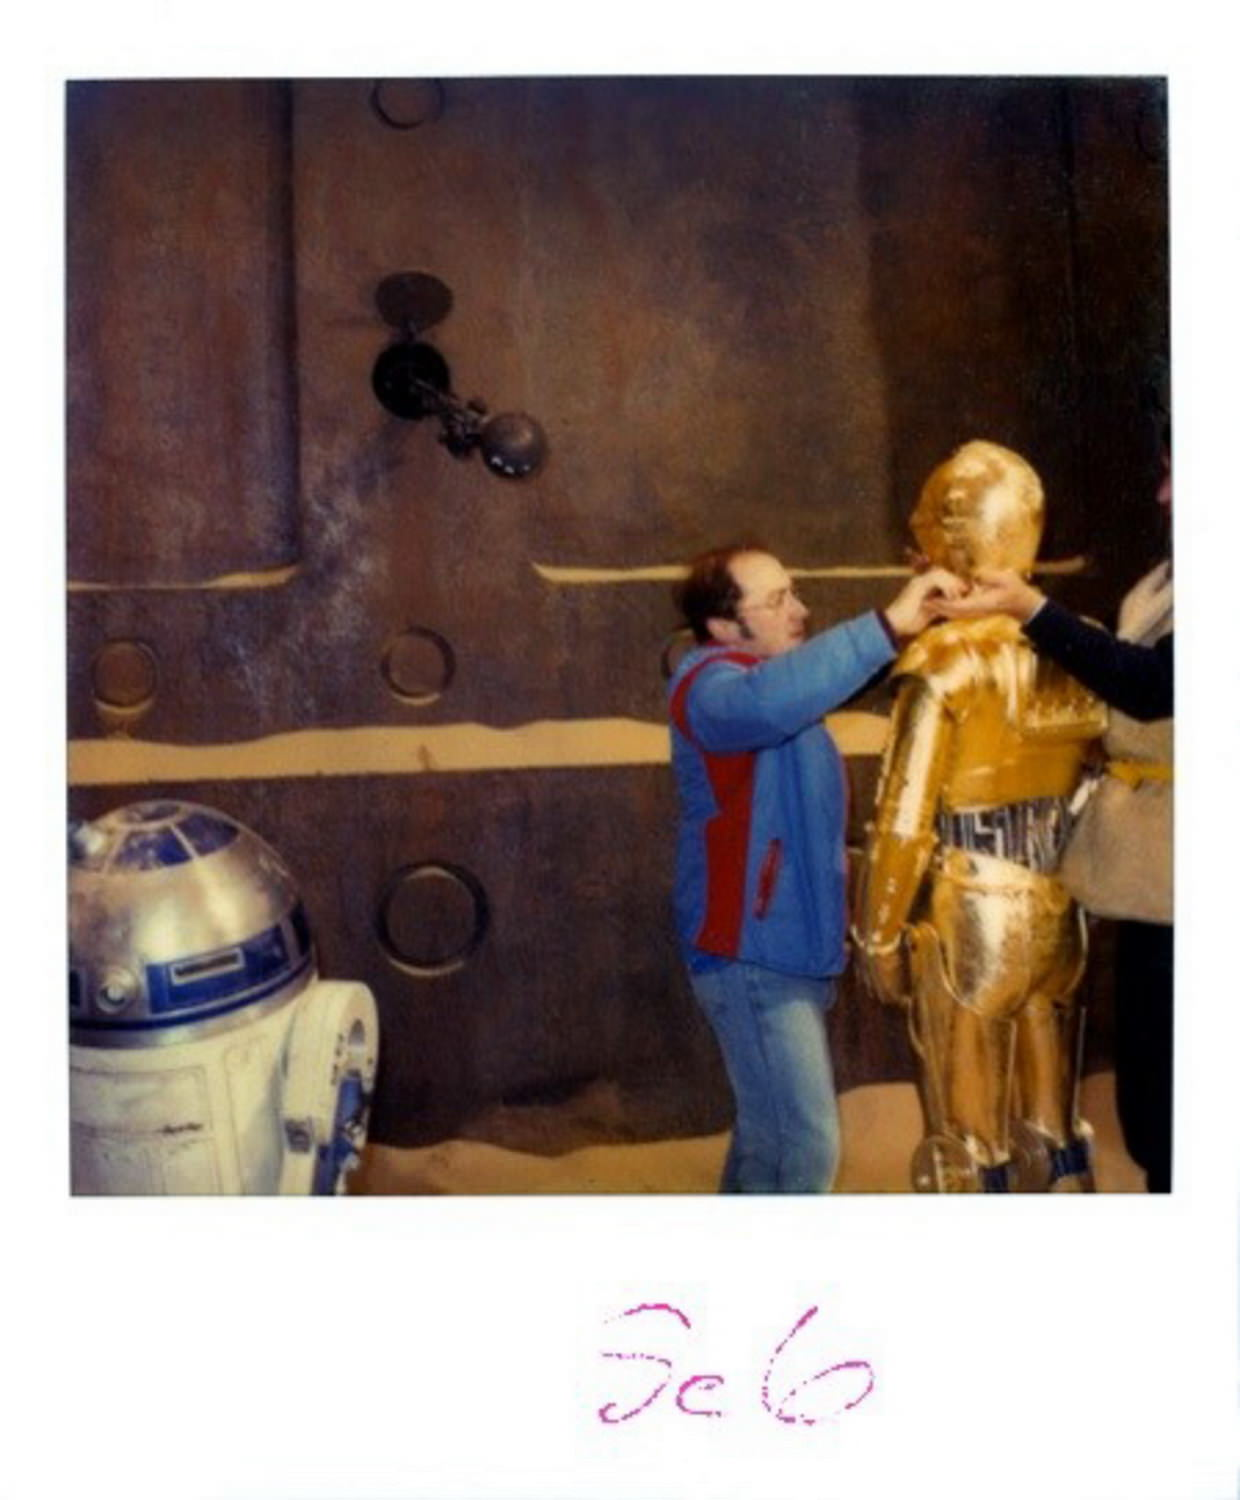 R2-D2 and C-3PO in front of Jabba's Palace